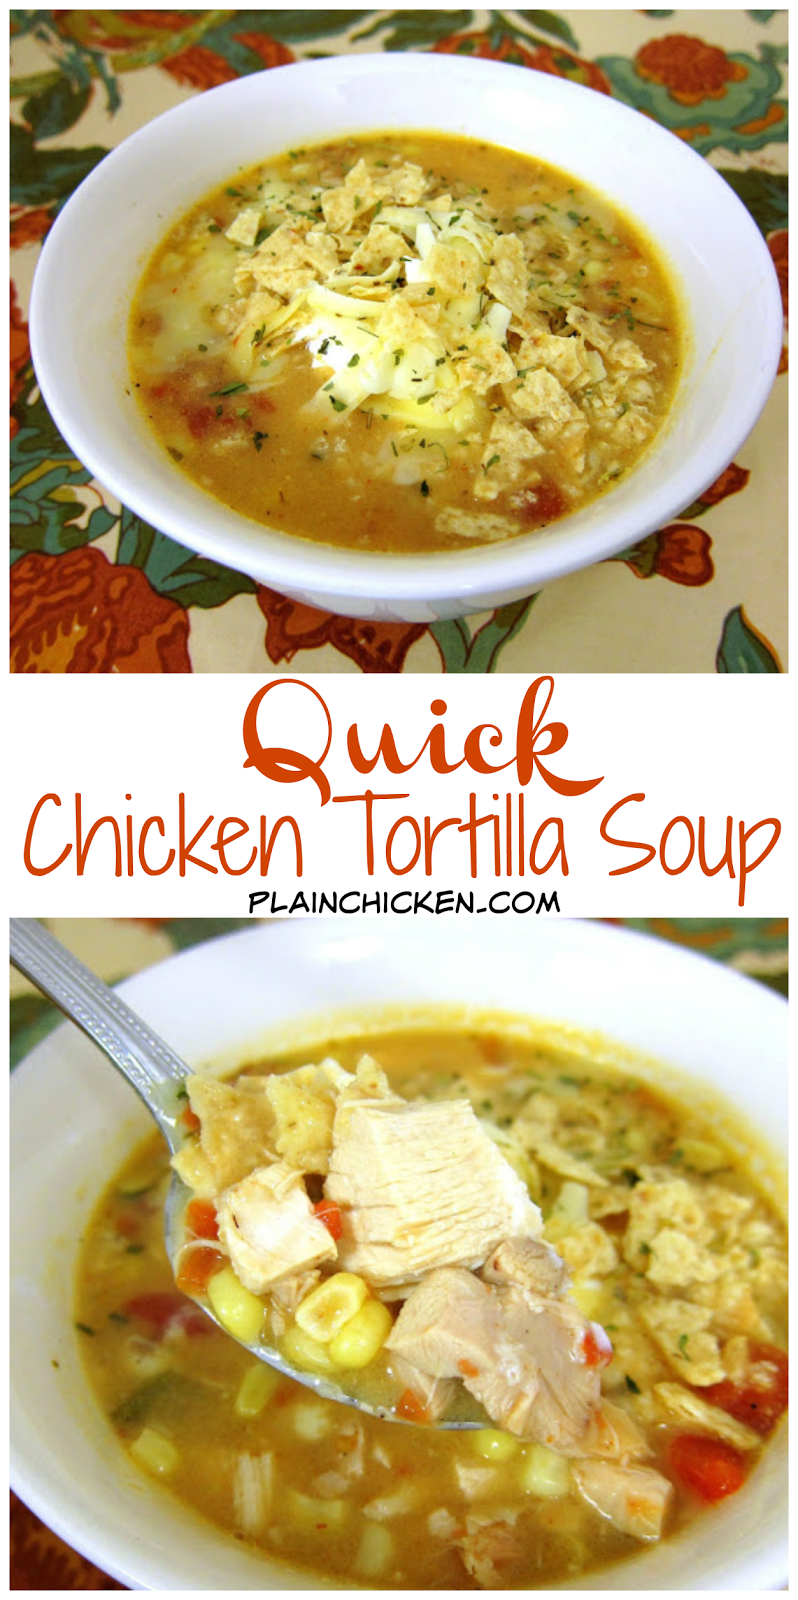 Quick Chicken Tortilla Soup - use rotisserie chicken for a super quick soup that is ready in 10 minutes! Chicken broth, Rotel, corn, chicken, cream of chicken soup, chili powder, garlic and onion. Top with sour cream, tortilla chips and cheese. We love to make this quick soup during the week! Serve with some warm bread or cornbread.